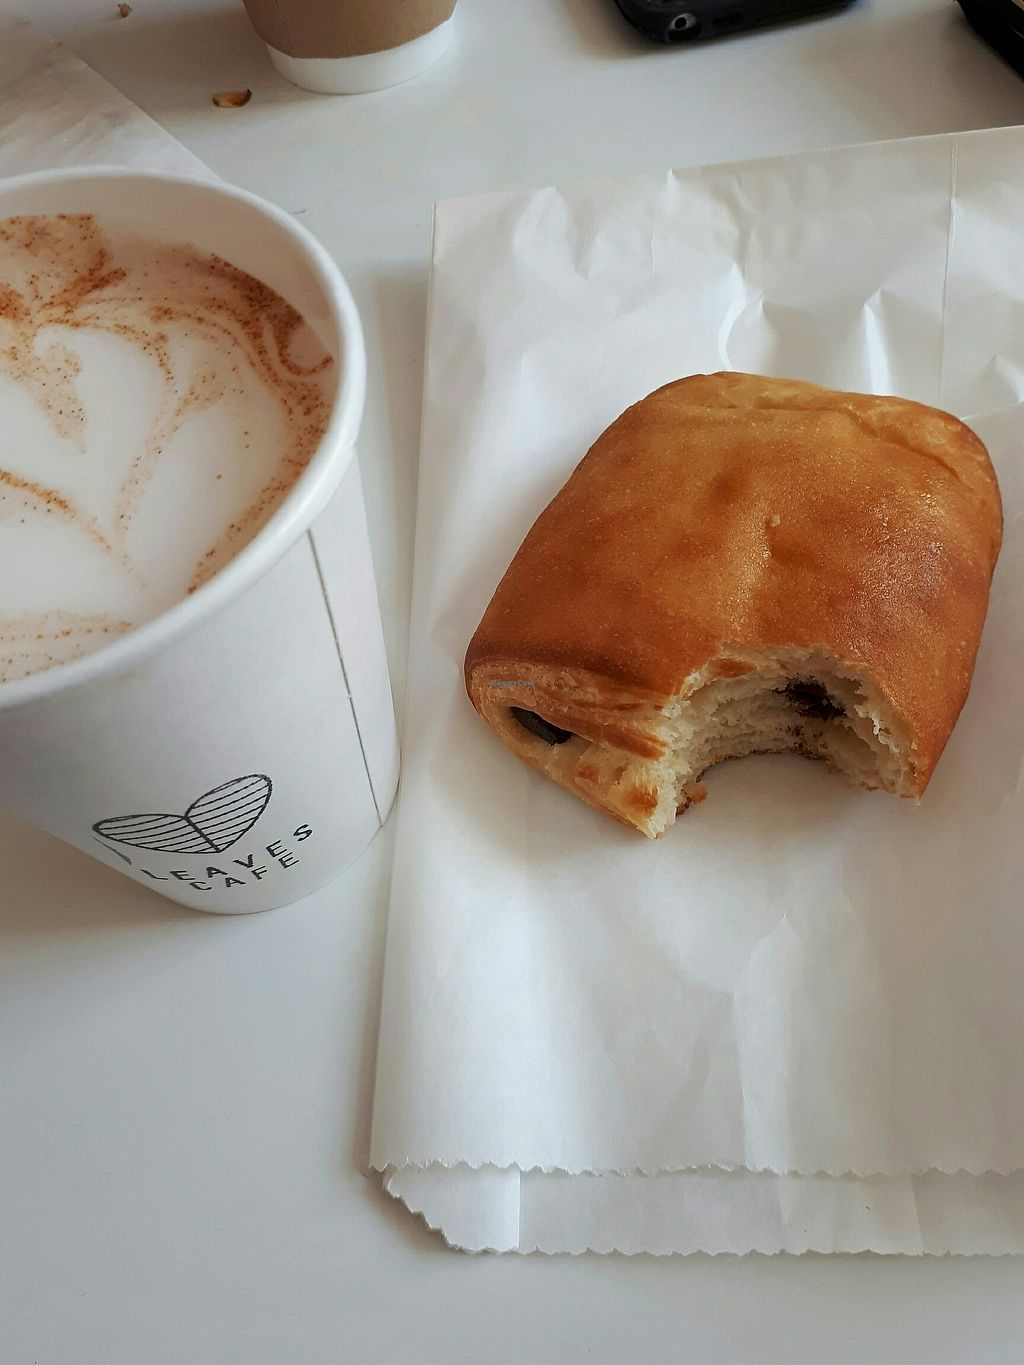 "Photo of Leaves Cafe  by <a href=""/members/profile/sandrachabot"">sandrachabot</a> <br/>chai latte & chocolate croissant <br/> August 12, 2017  - <a href='/contact/abuse/image/96956/292058'>Report</a>"